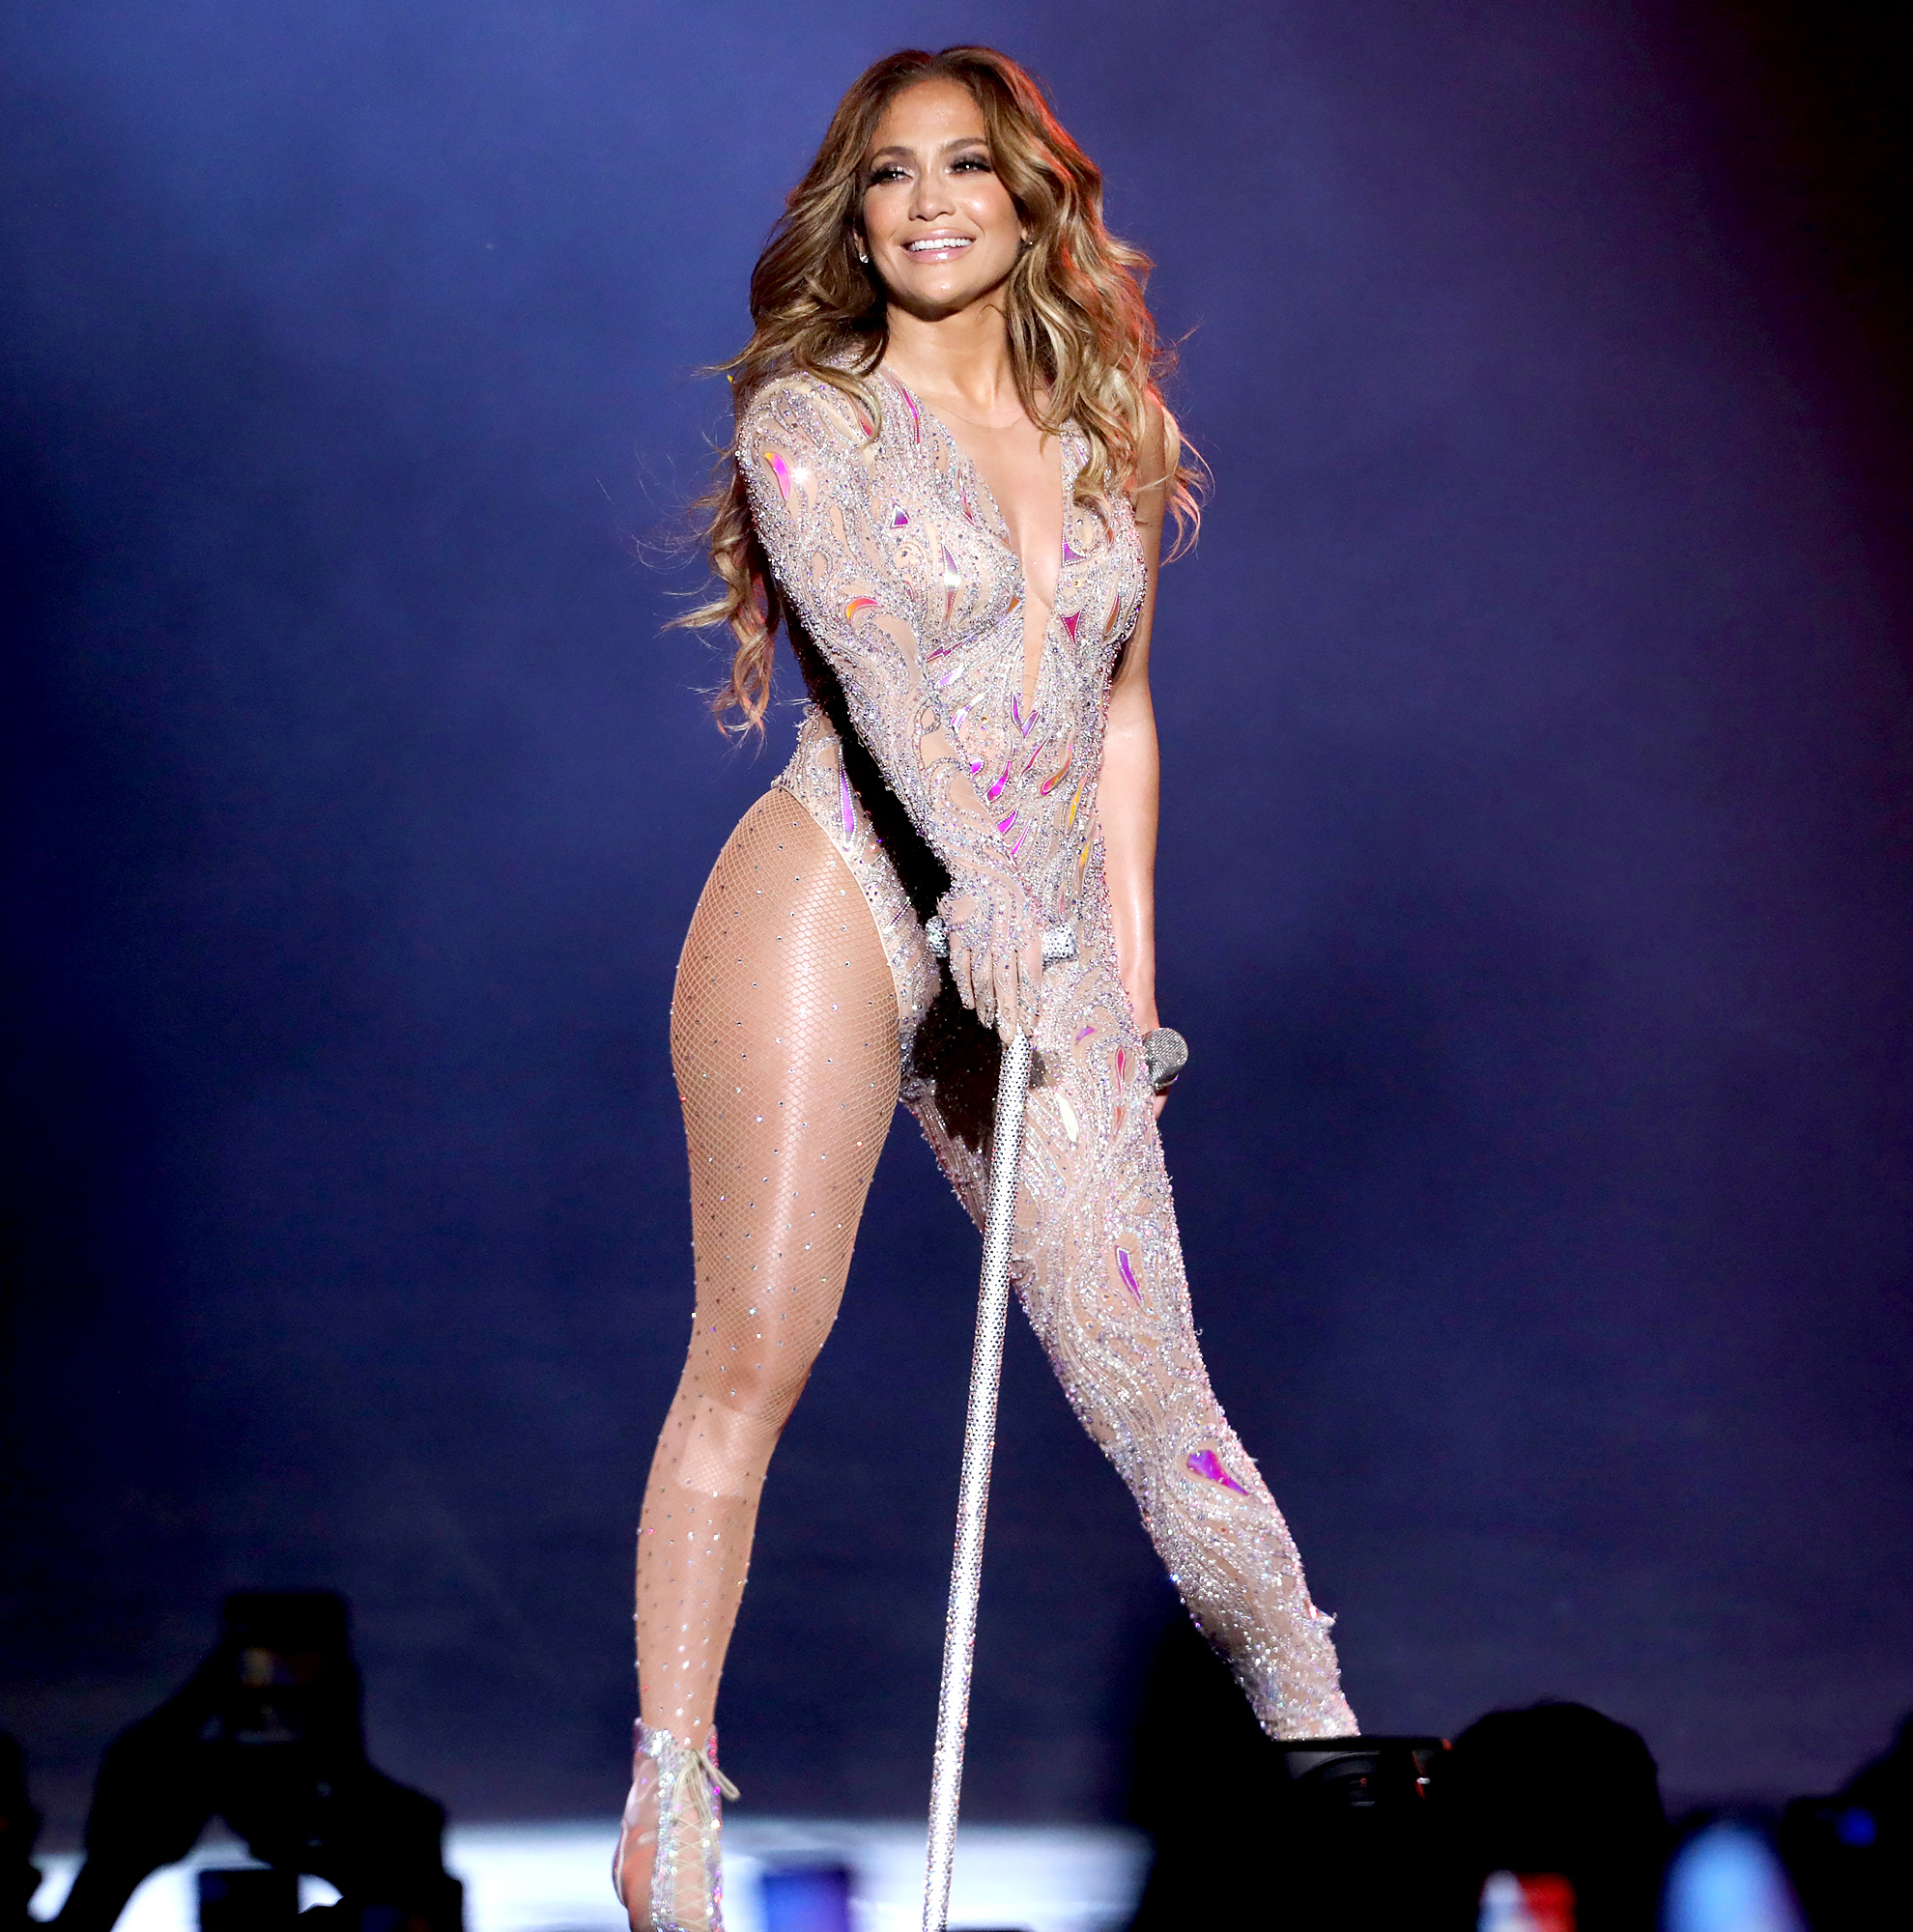 Jennifer-Lopez-to-open-Super-Bowl